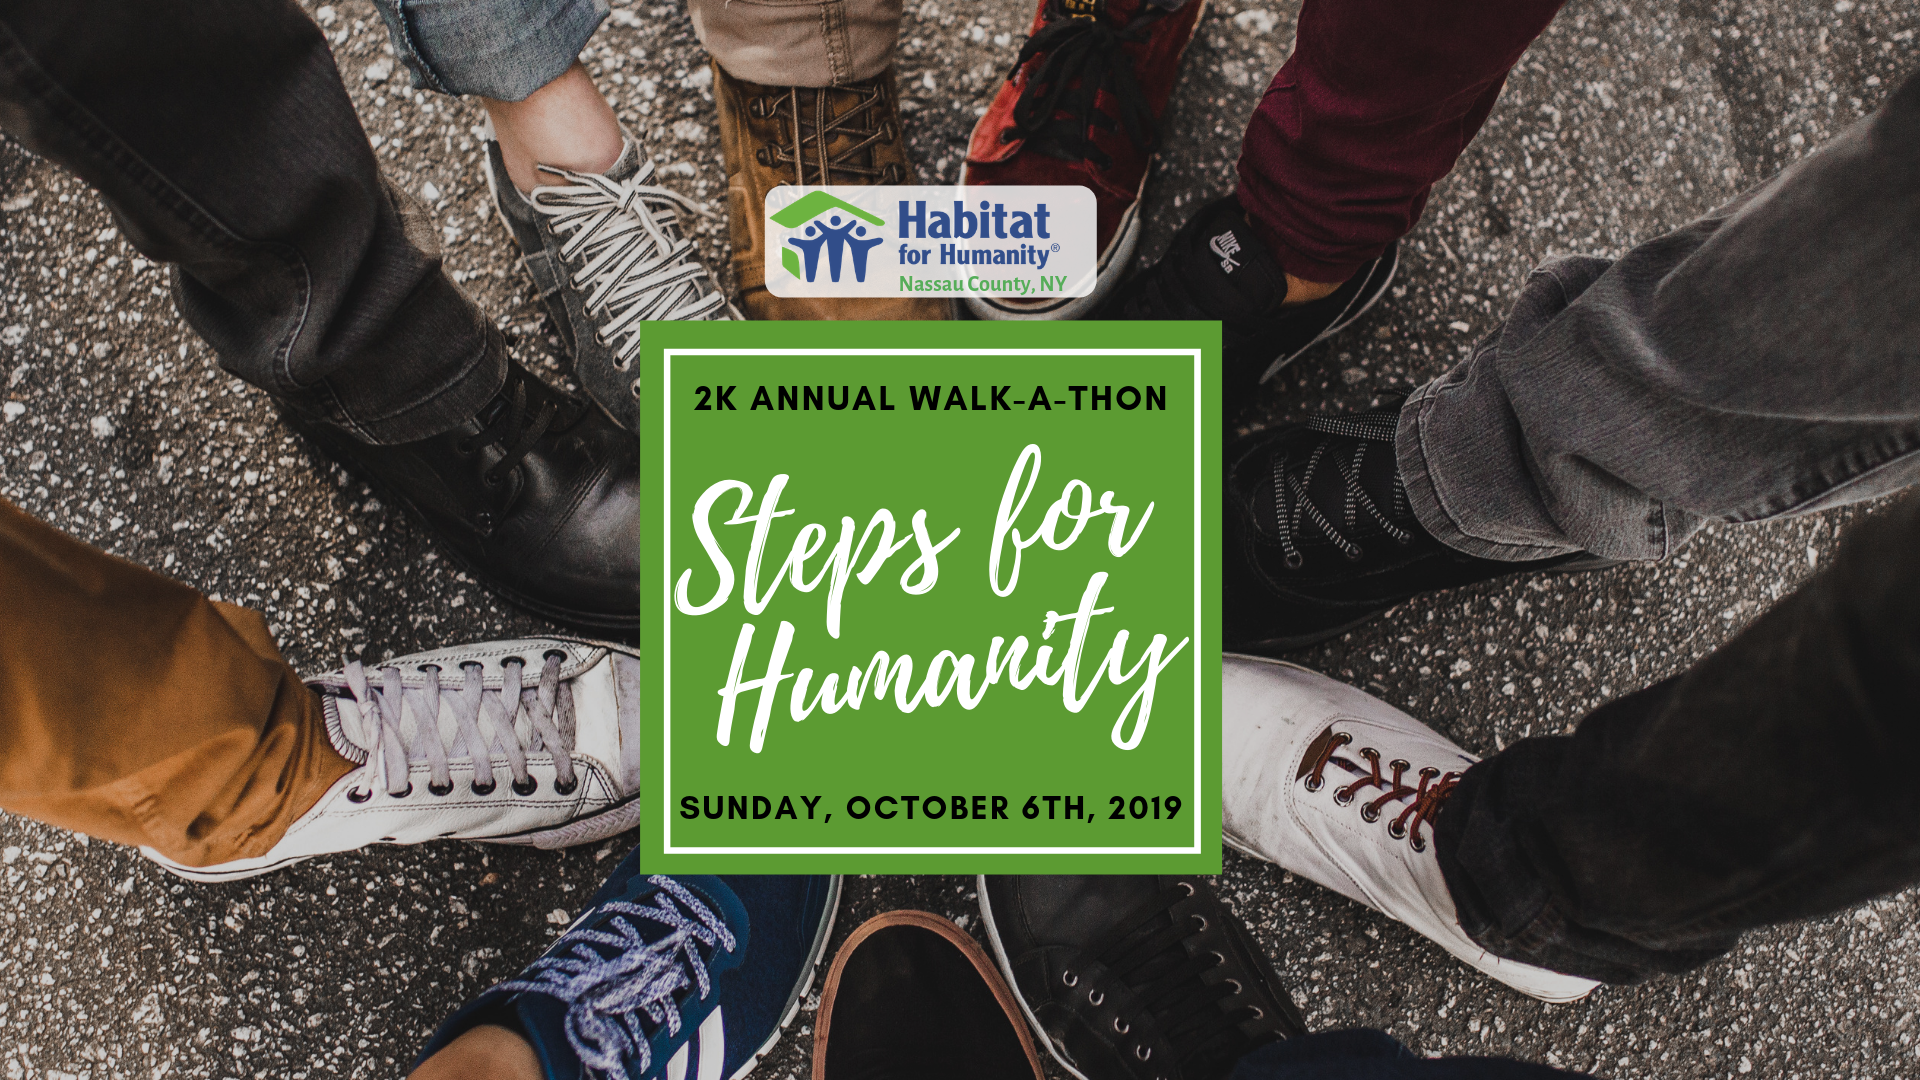 STEPS FOR HUMANITY! 2019 Annual 2K Walk-A-Thon